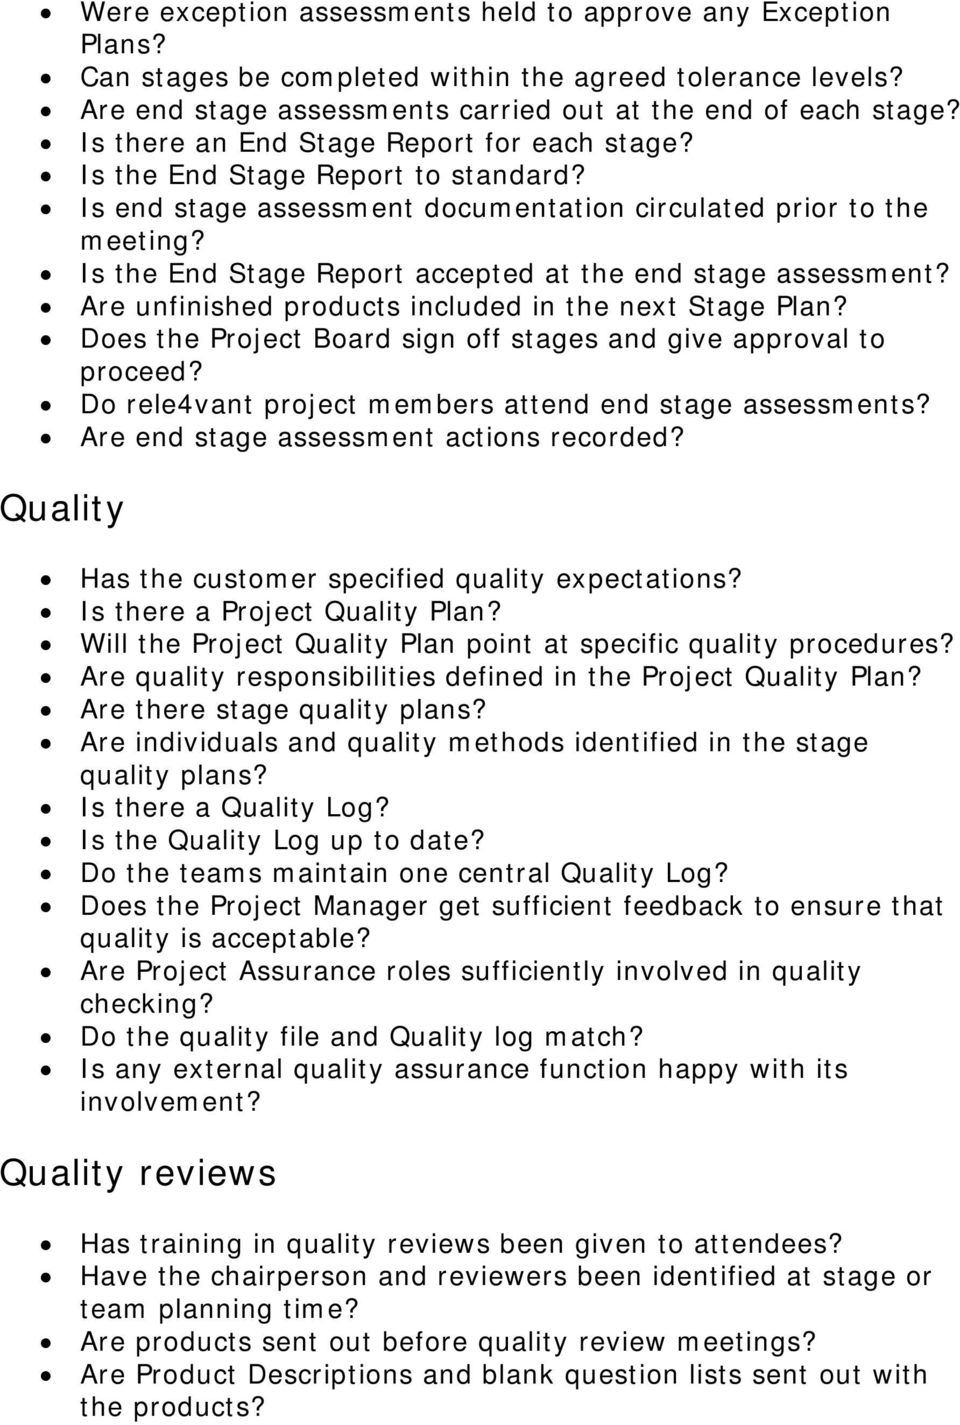 Is the End Stage Report accepted at the end stage assessment? Are unfinished products included in the next Stage Plan? Does the Project Board sign off stages and give approval to proceed?